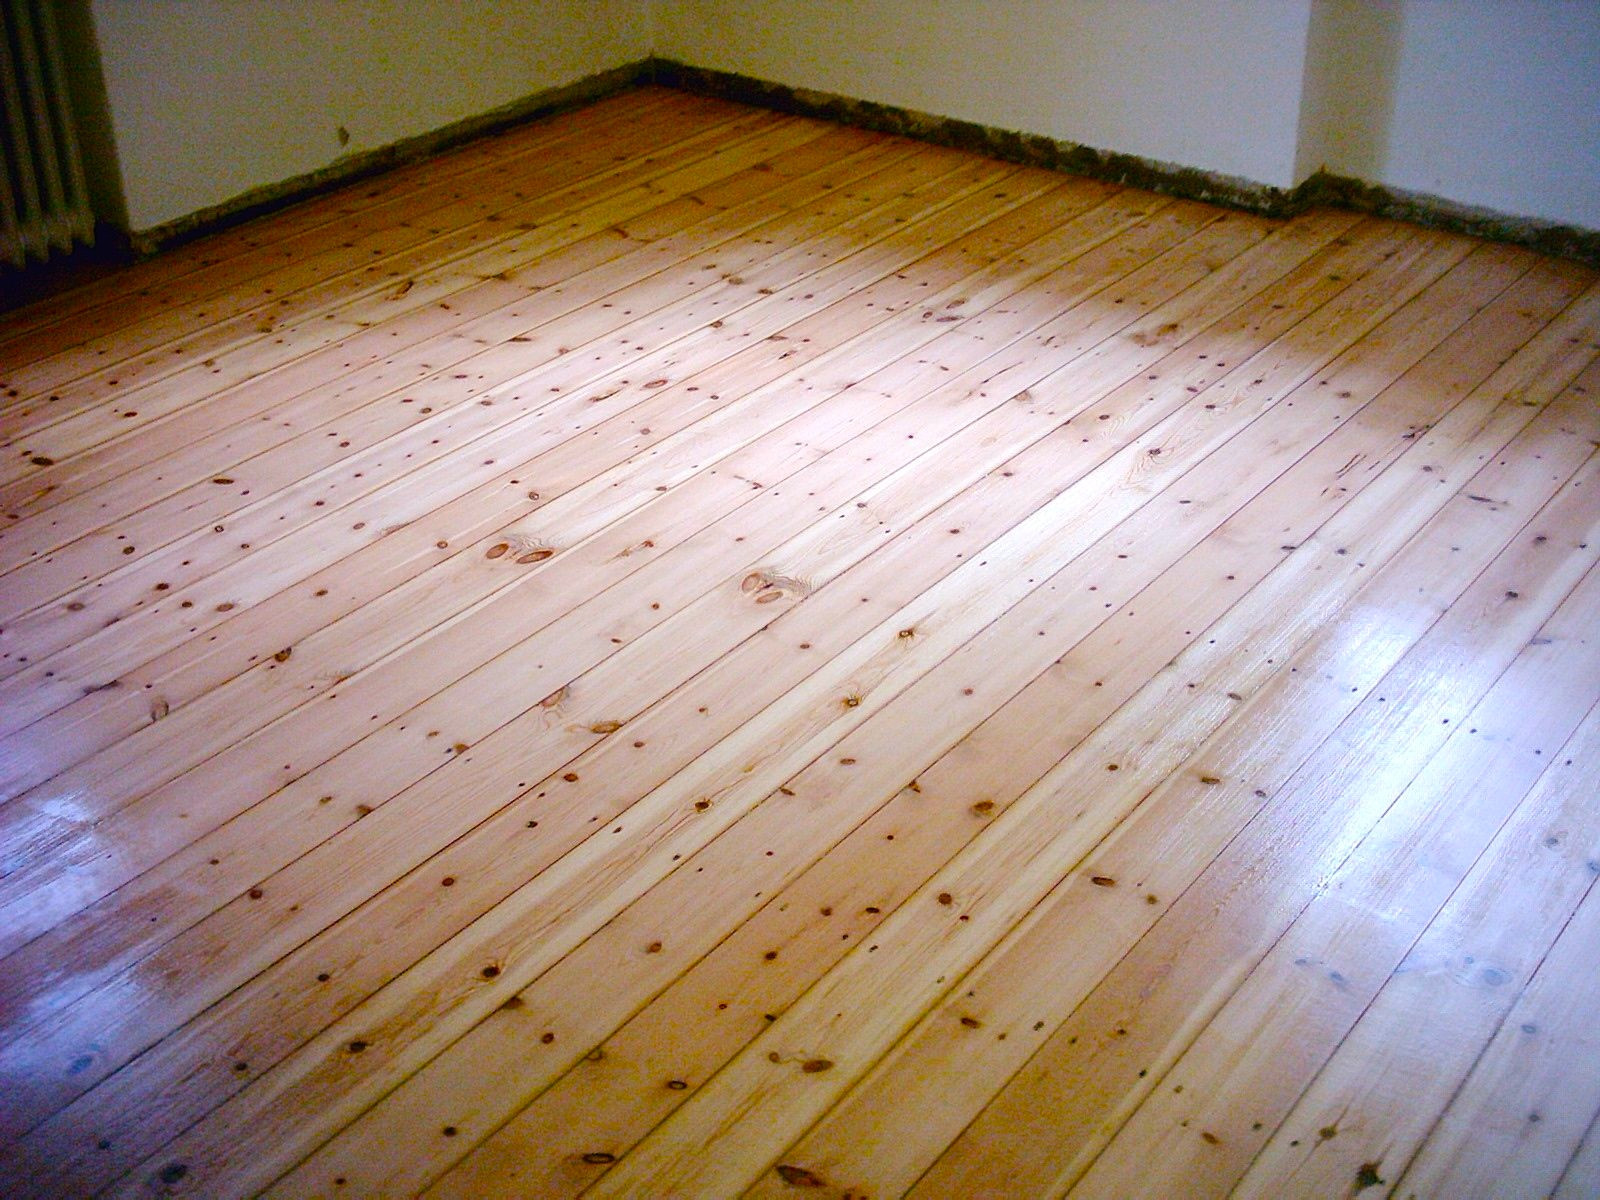 Floorboards with acrylic based water paint